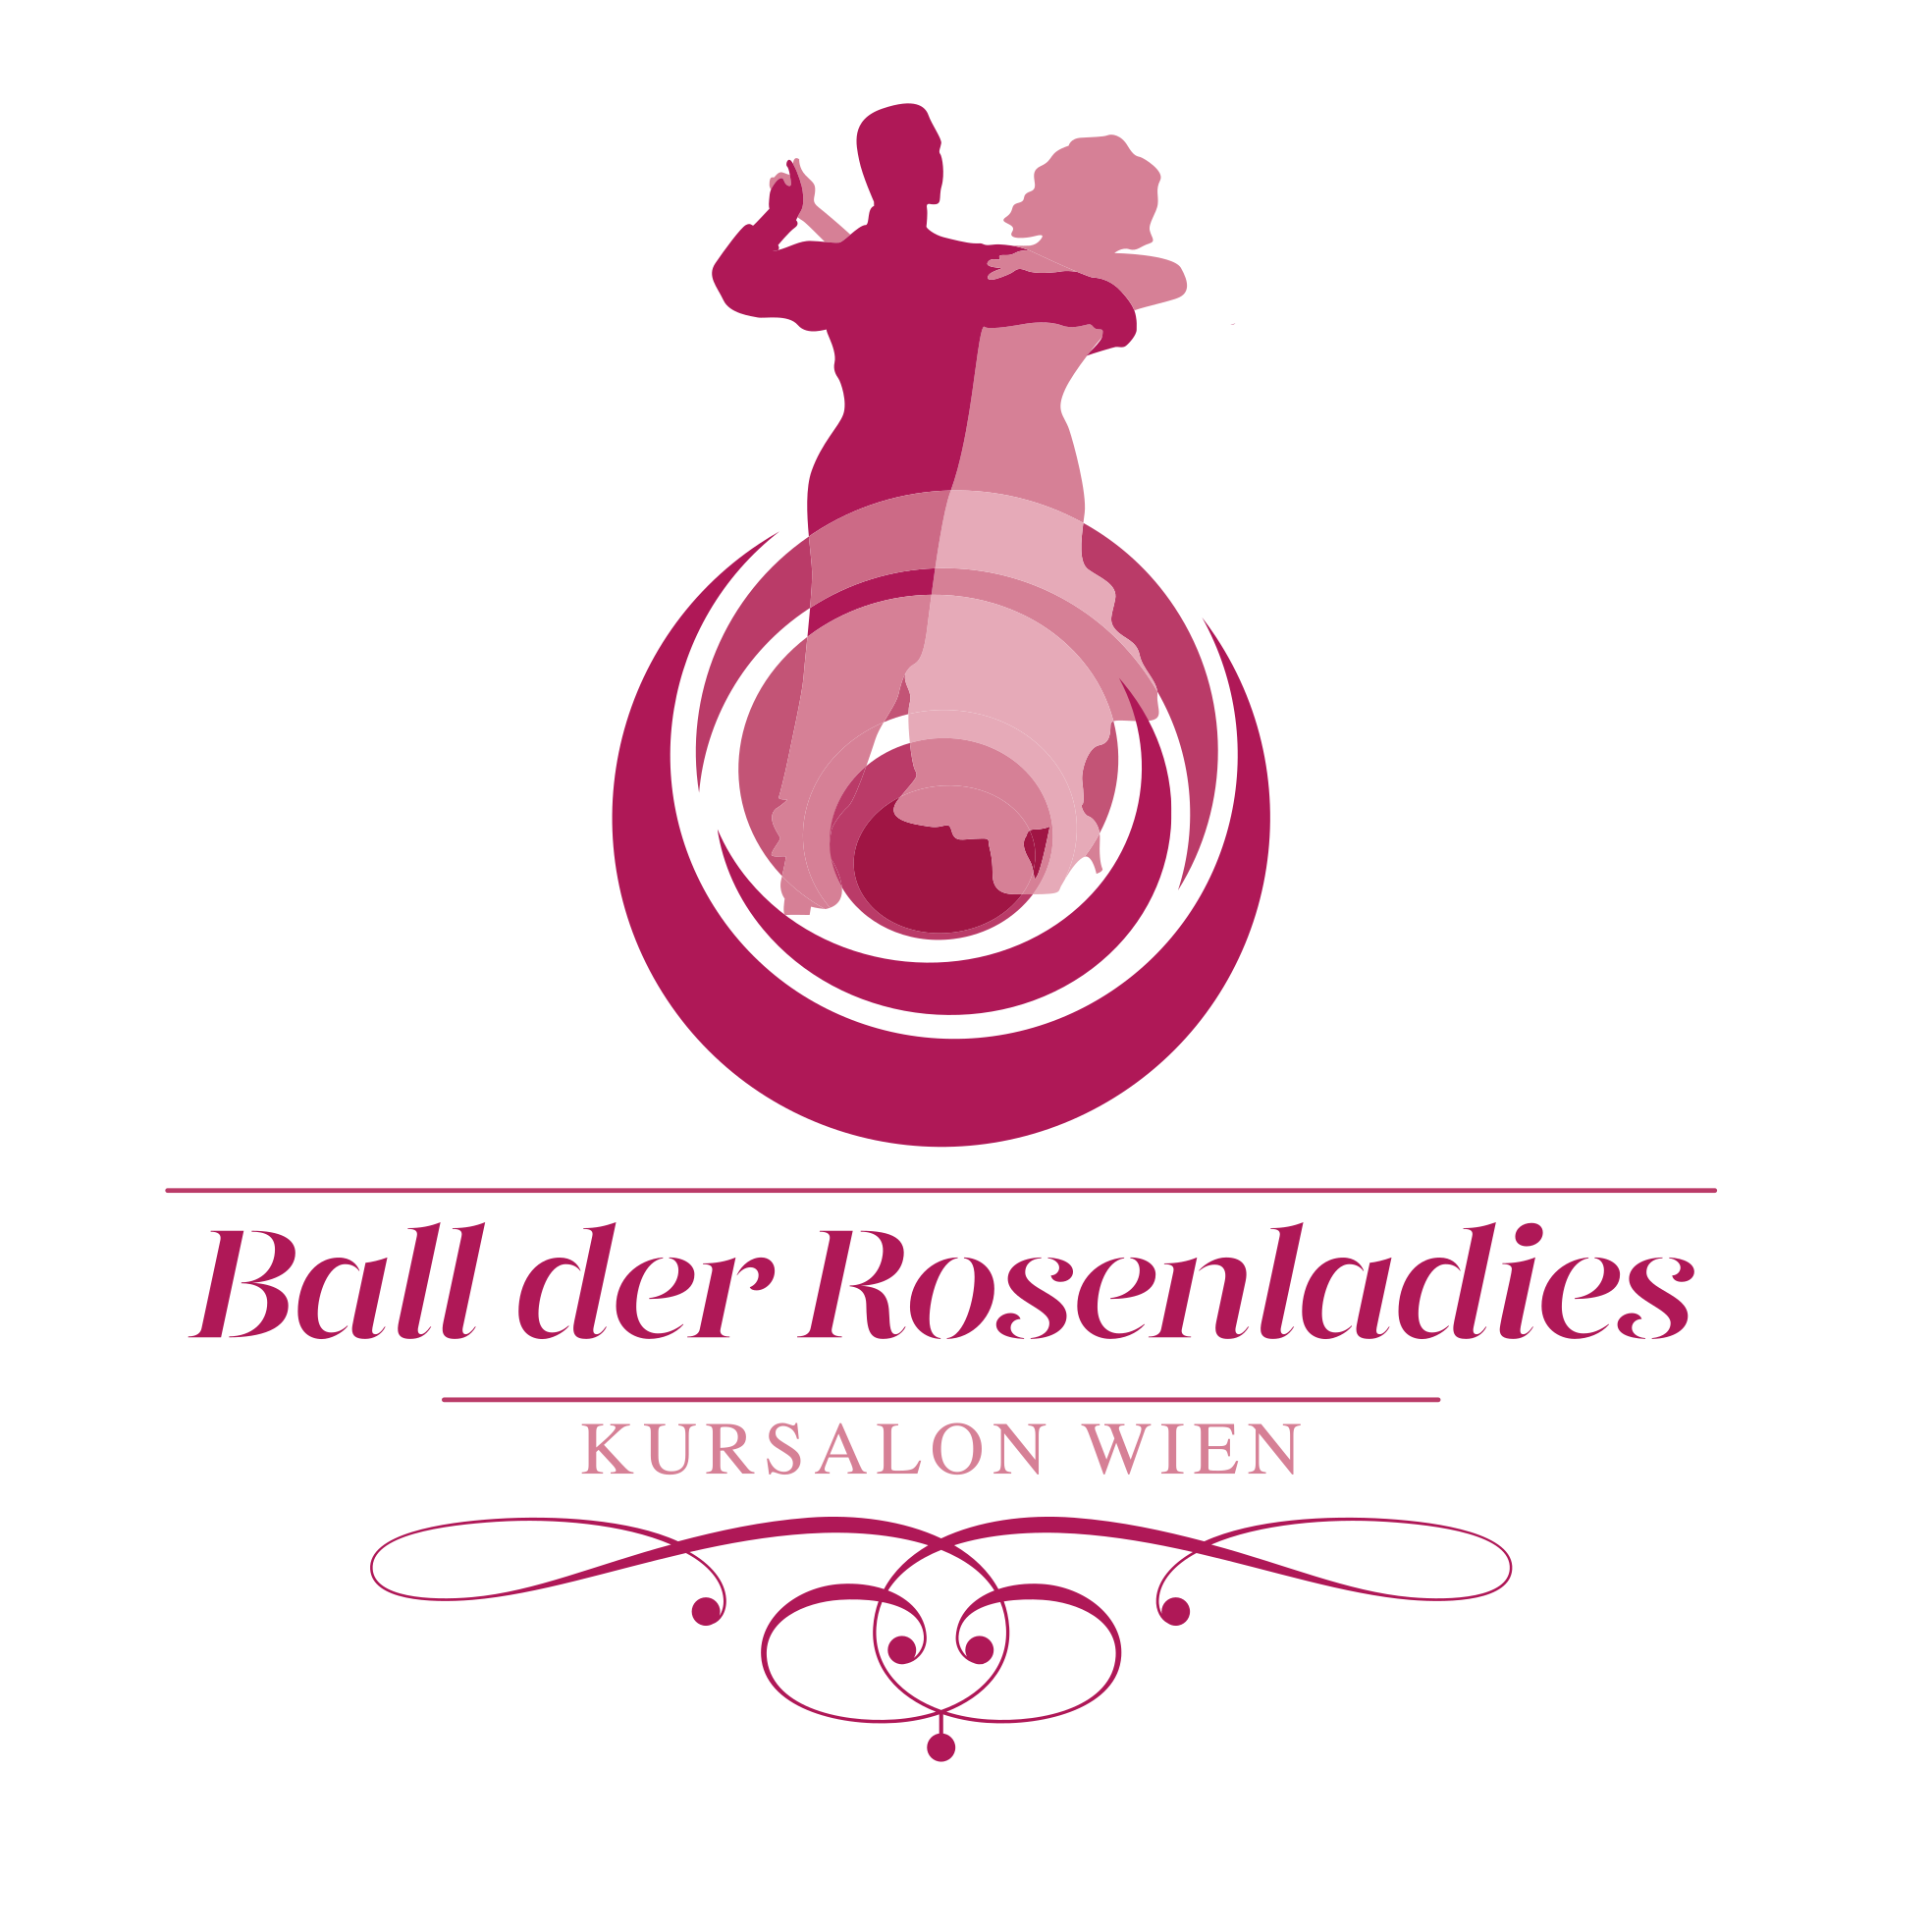 Ball der Rosenladies